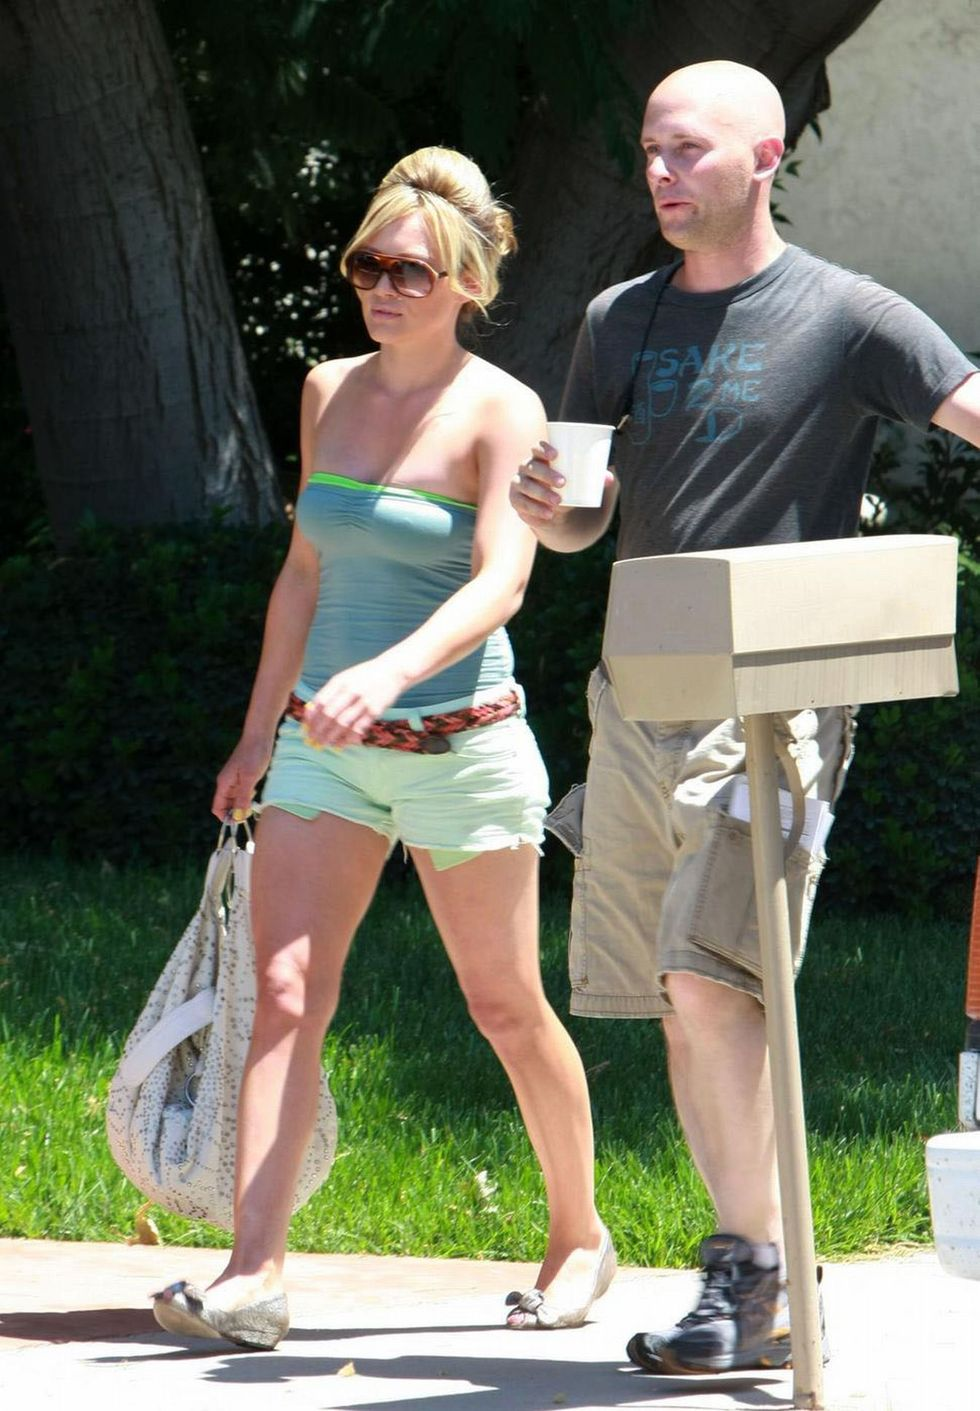 hilary-duff-ot-the-set-of-stay-cool-movie-01